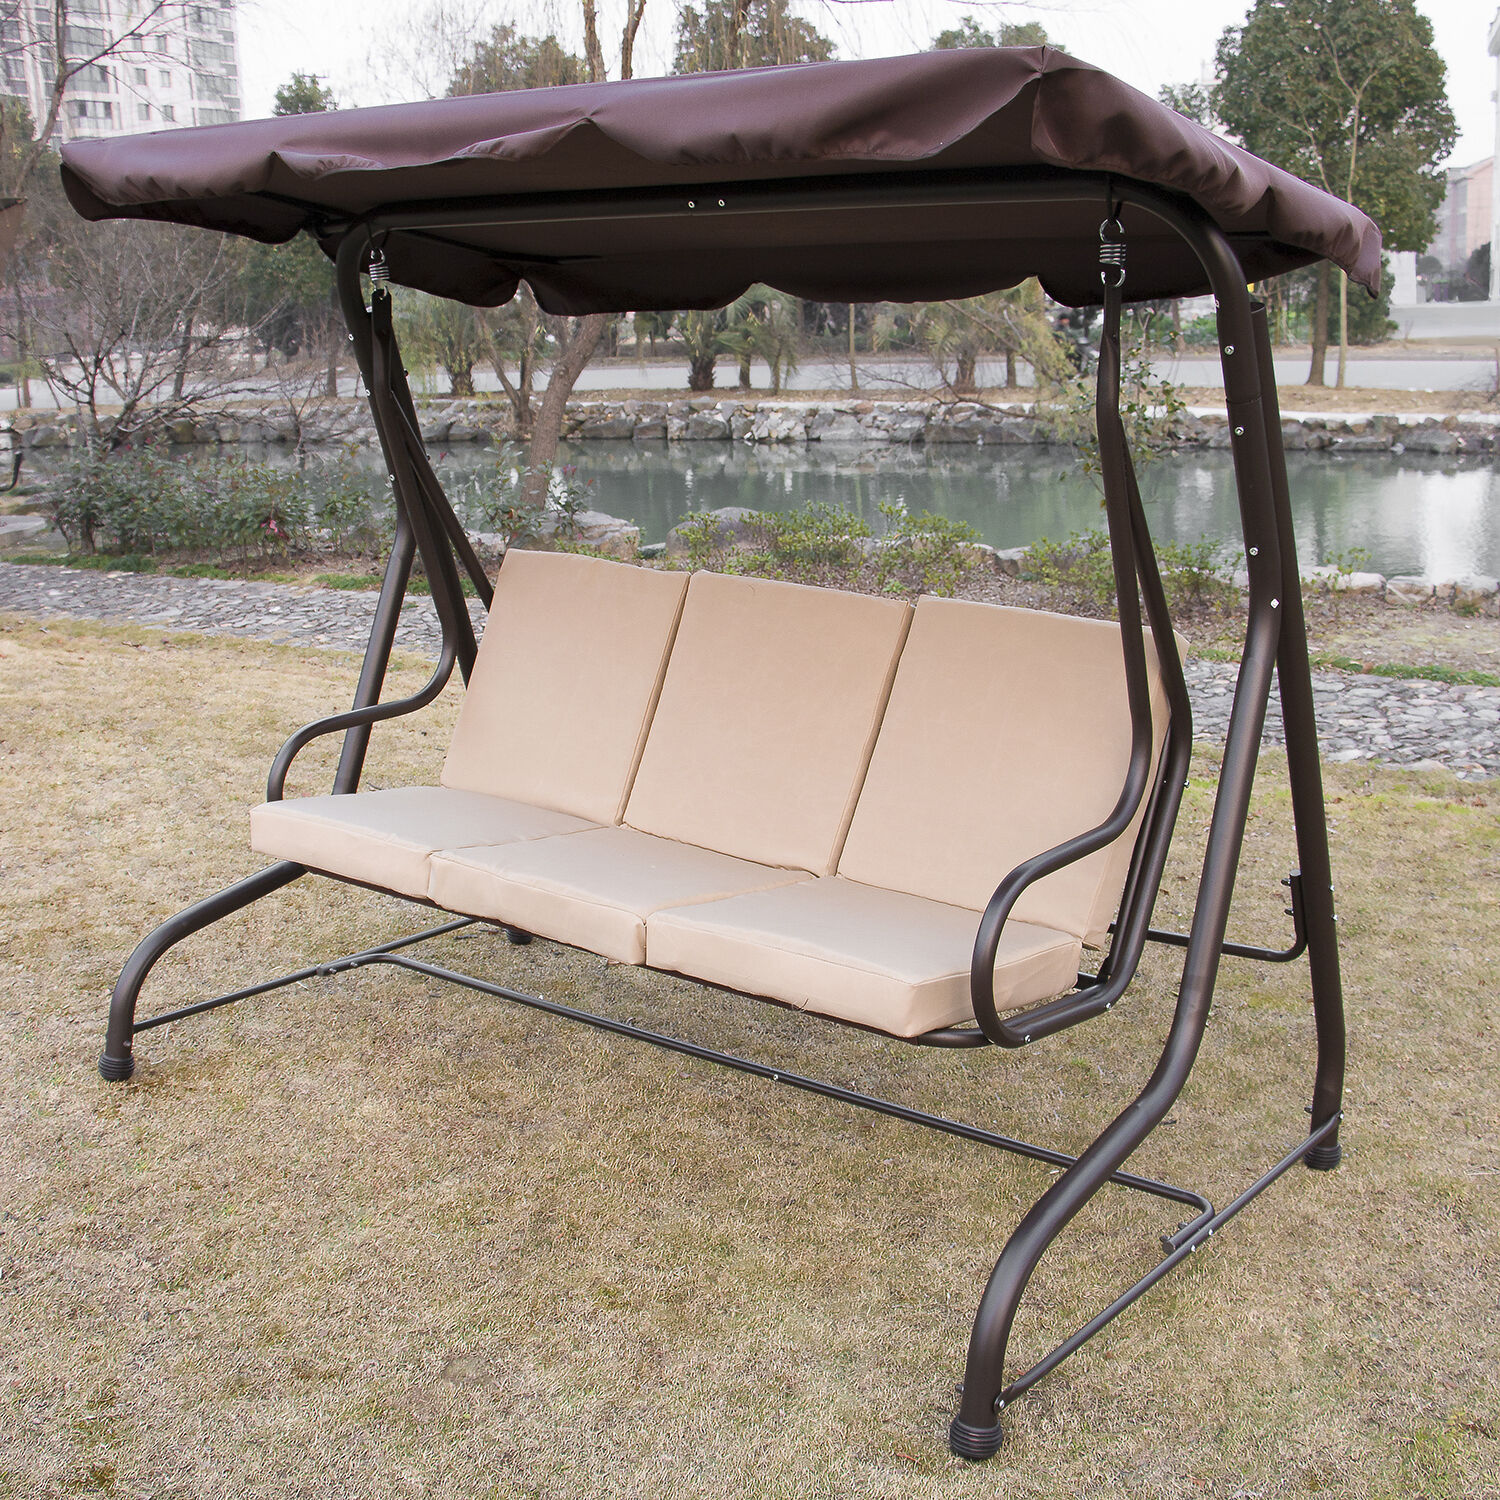 Outdoor Chair With Canopy Outdoor 3 Person Canopy Swing Glider Hammock Patio